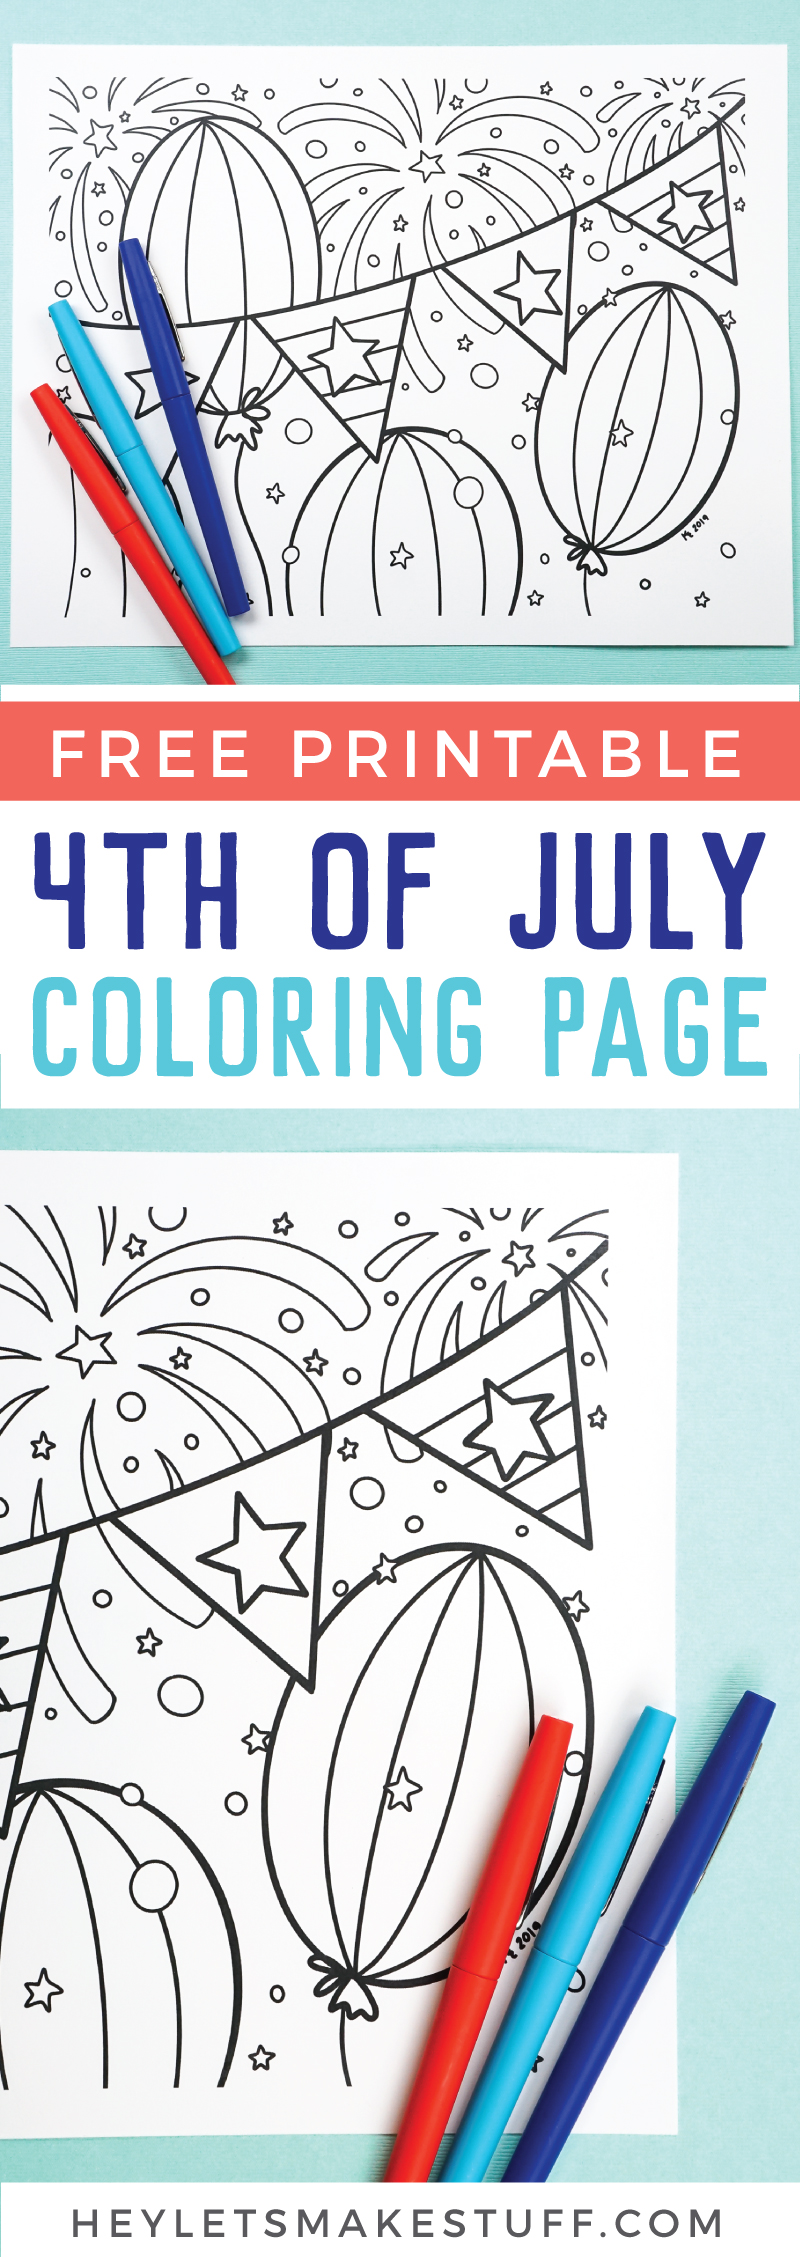 This free printable 4th of July coloring page will get you in the patriotic mood. Kids and adults alike will love creating this Independence Day masterpiece. Print it out for free, grab your favorite colors and bring the page to life! via @heyletsmakestuf